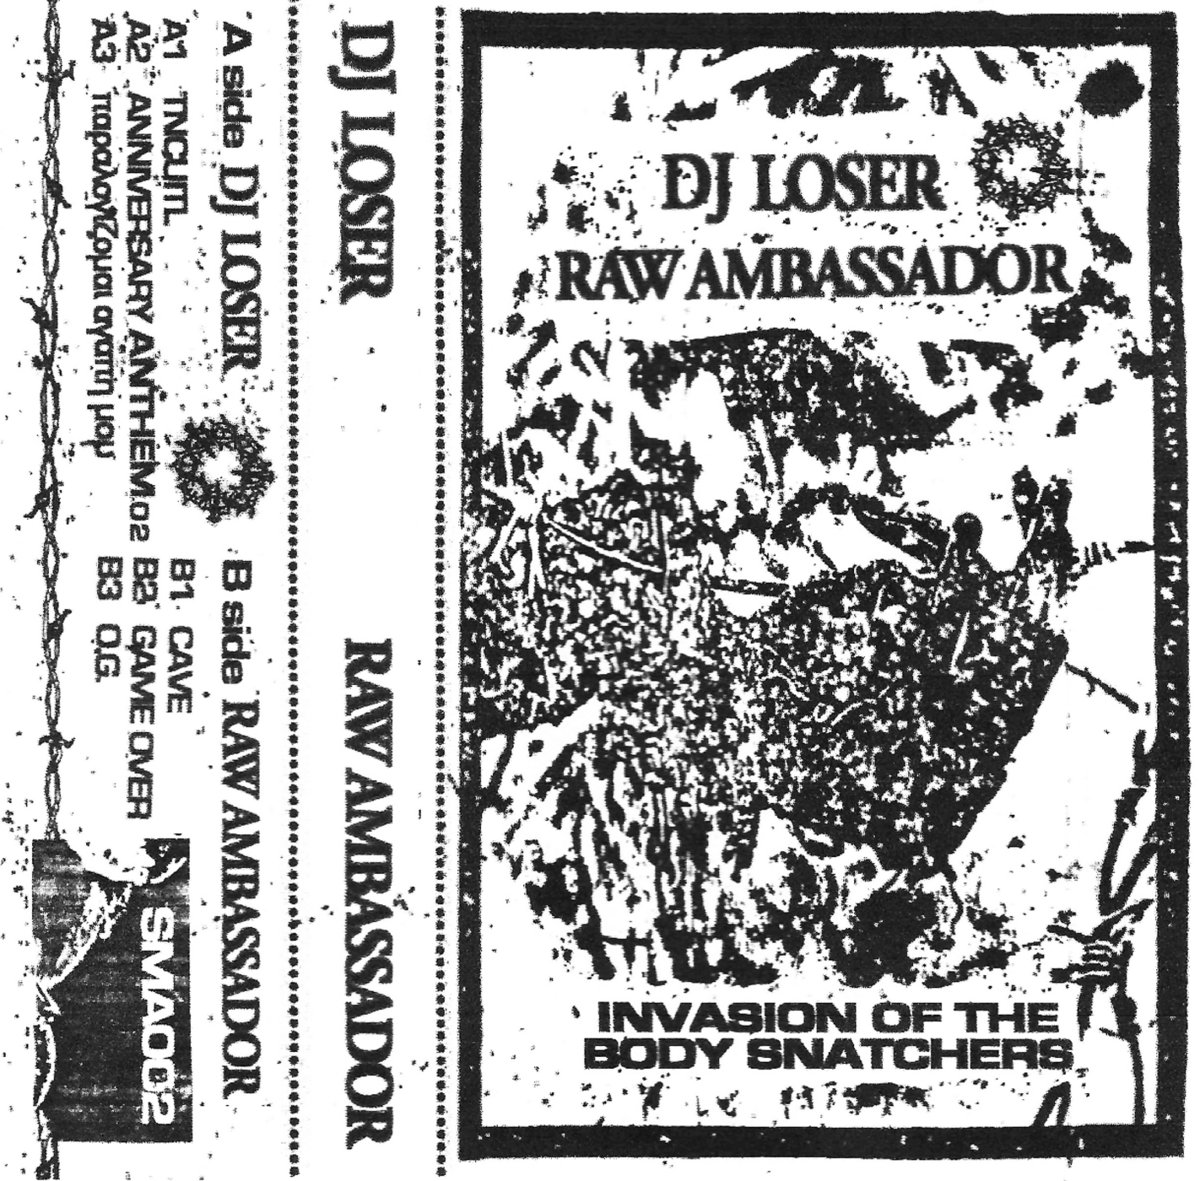 invasion of the body snatchers | smashing tape records